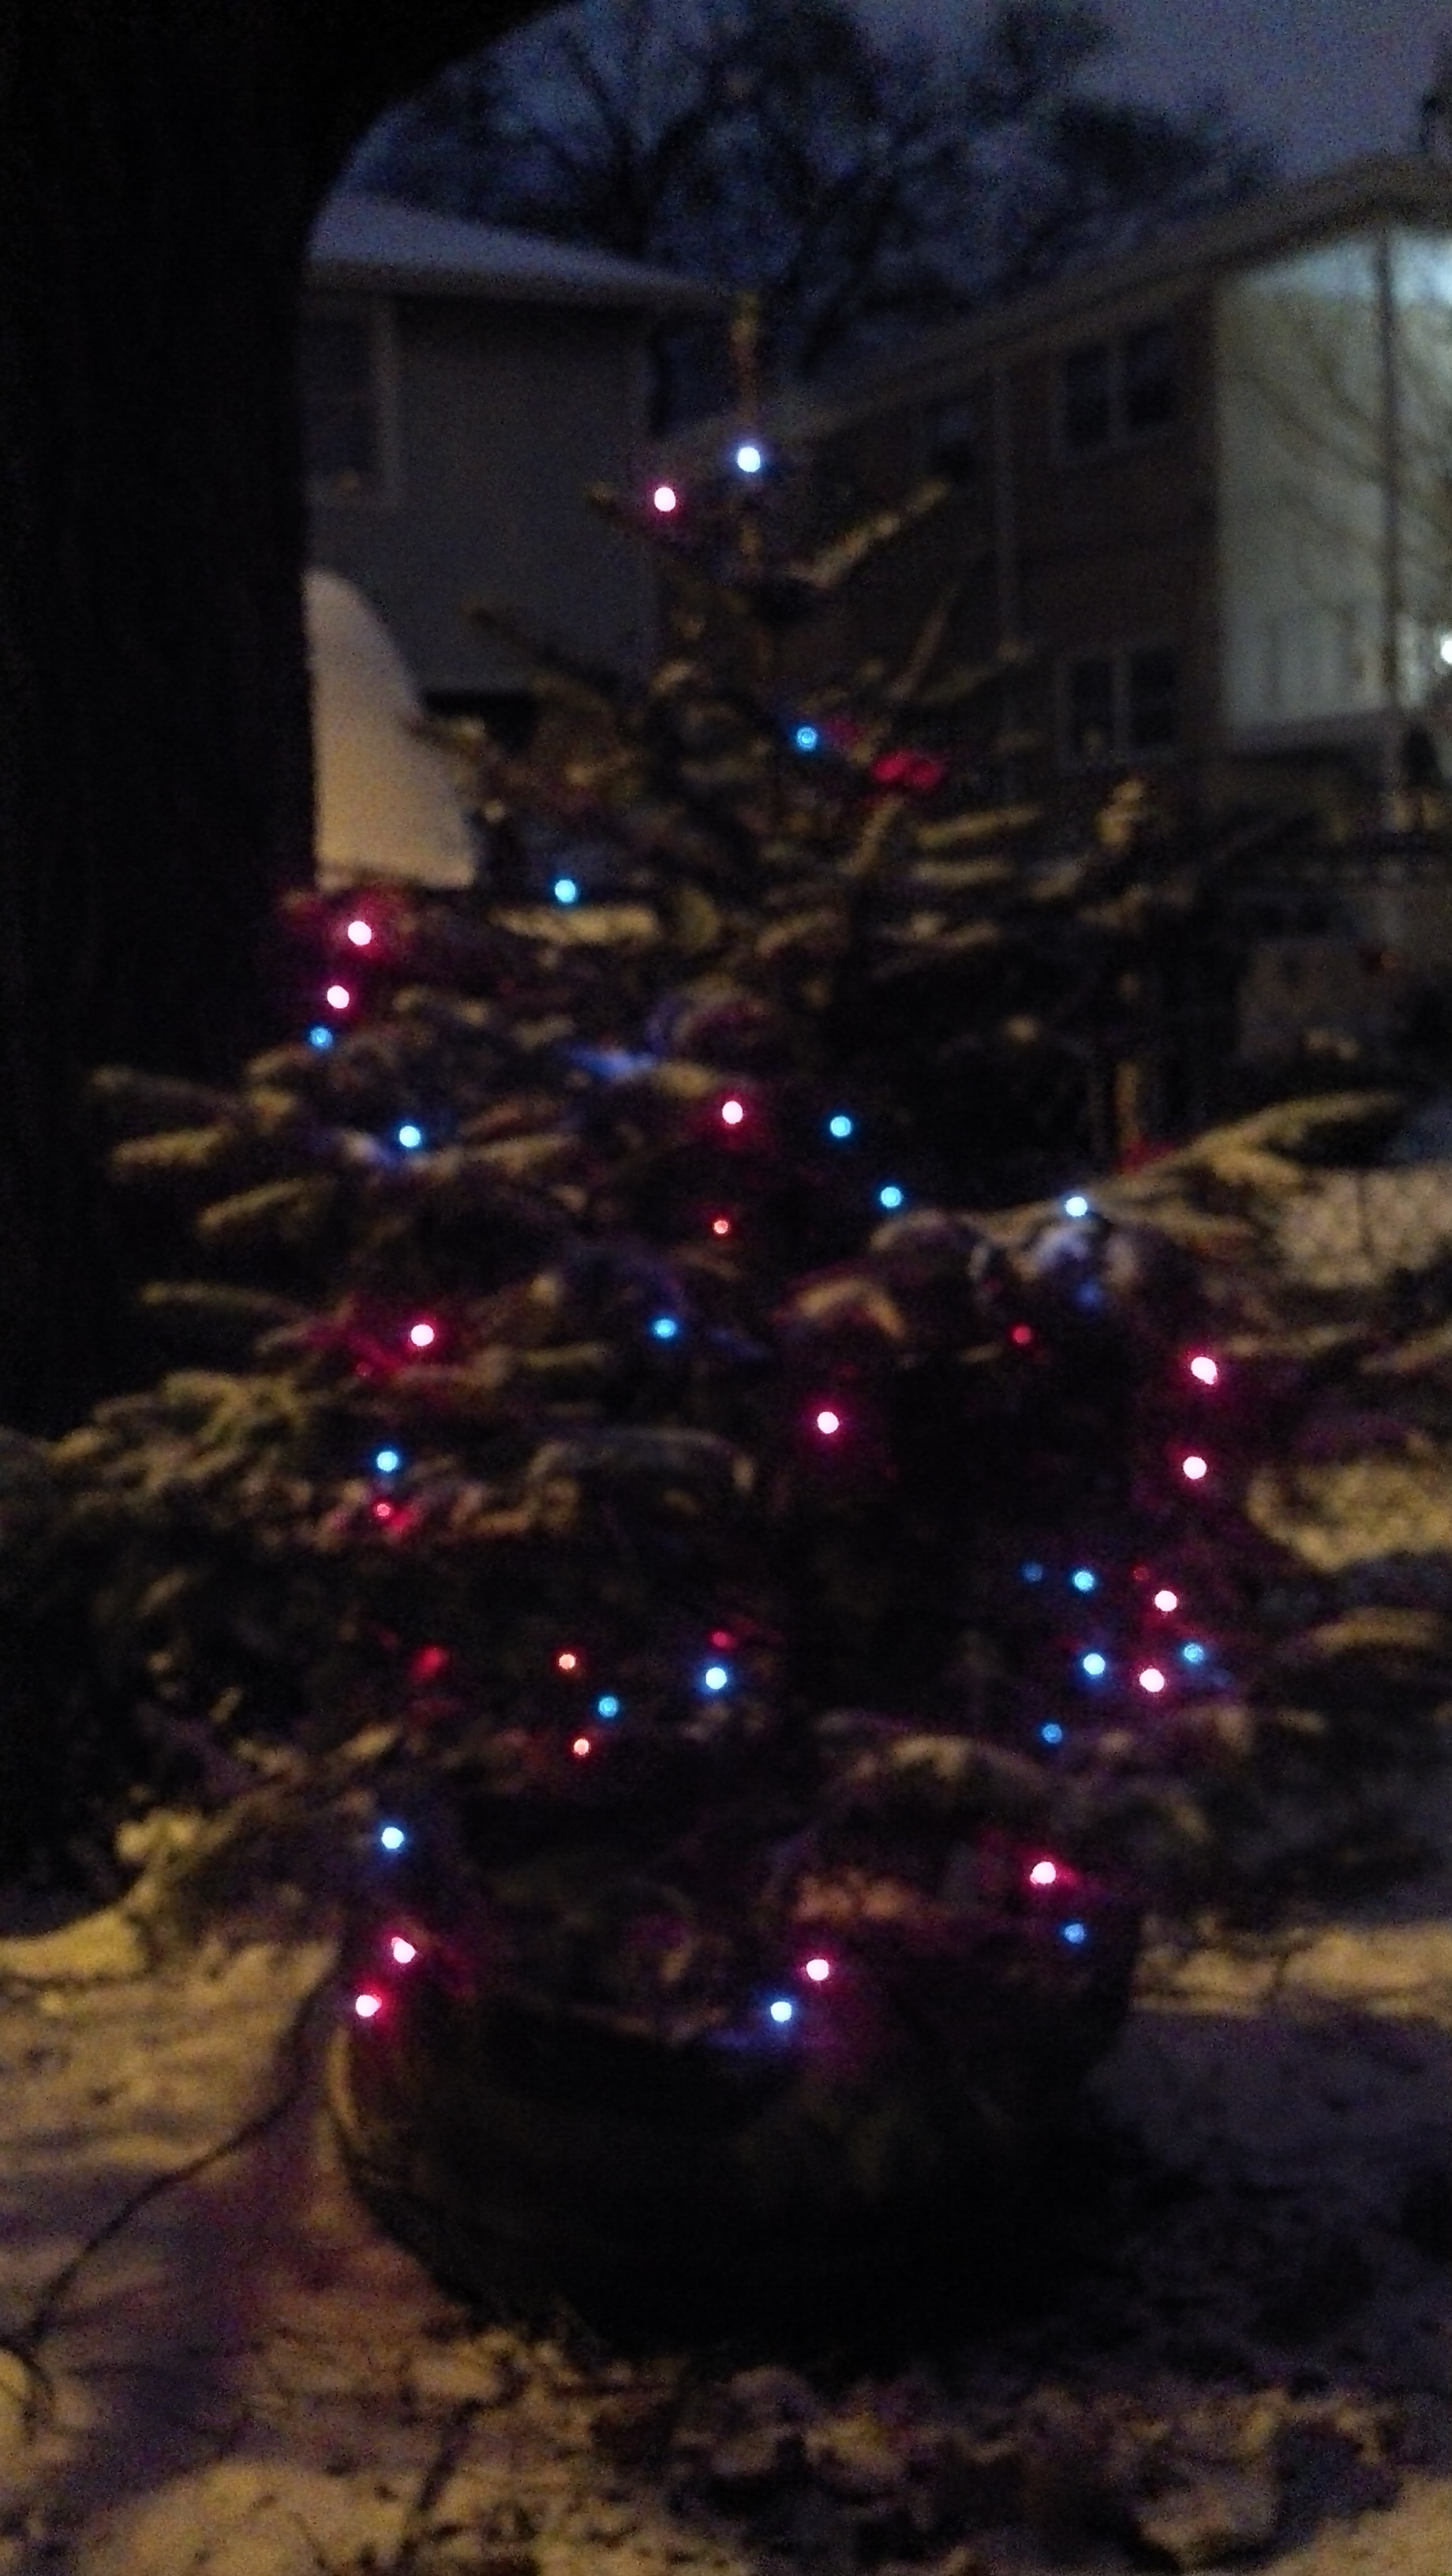 Patriotic Christmas Lights.My Patriotic Christmas Tree Blue Batting Helmet